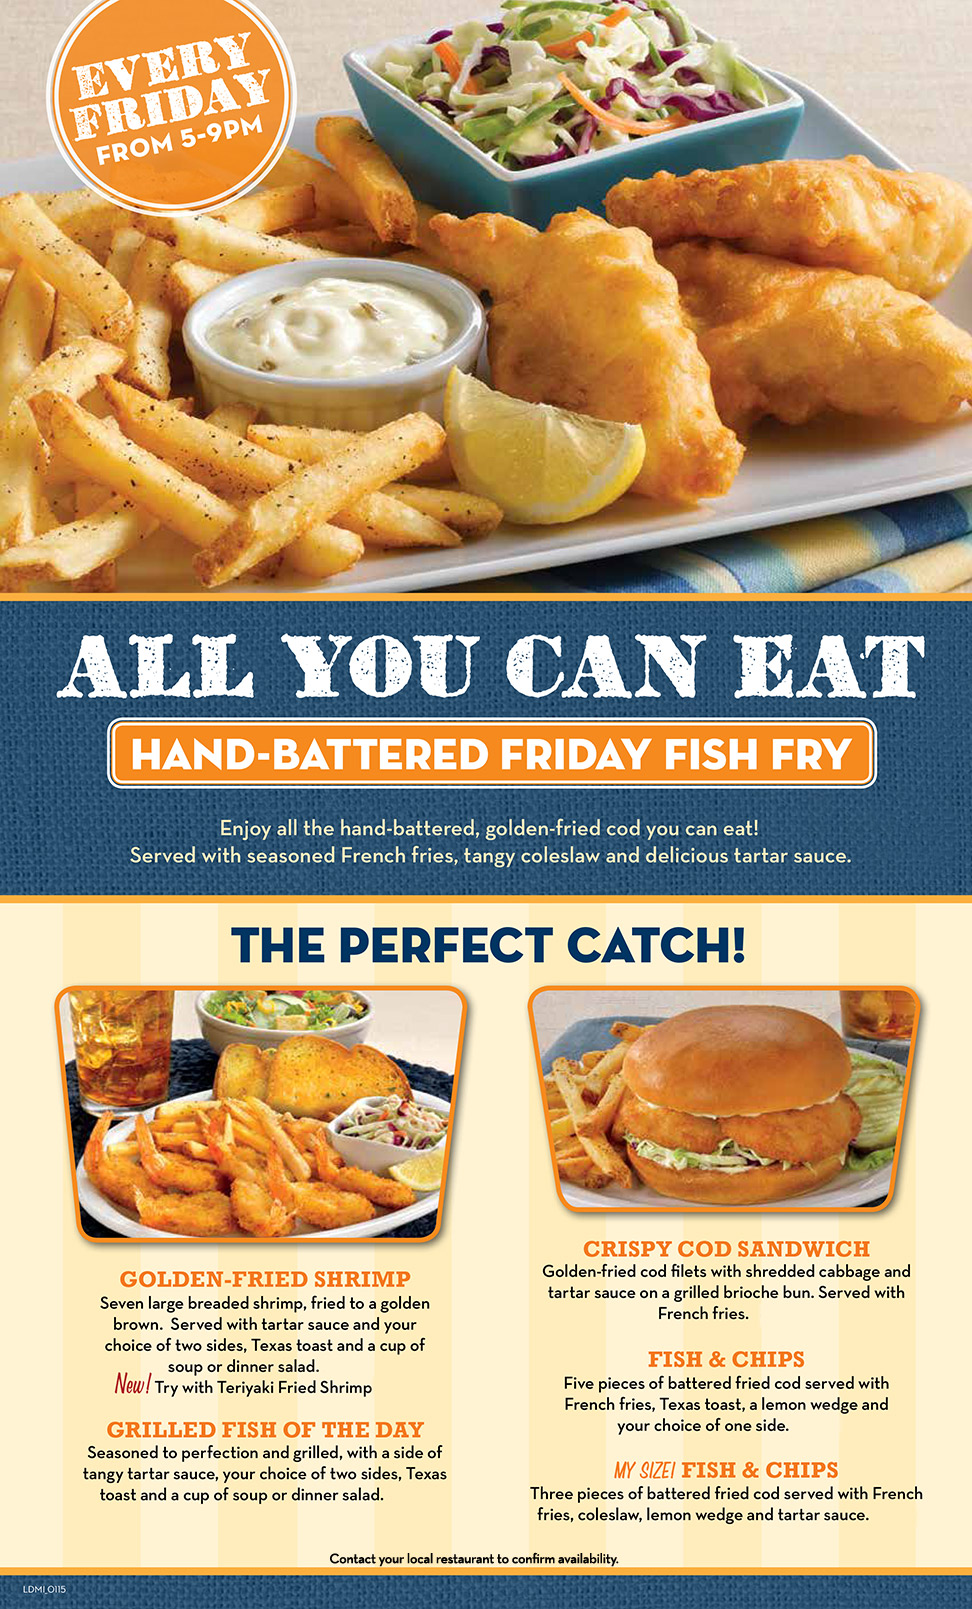 Village inn all you can eat fish fry for Fish fry menu